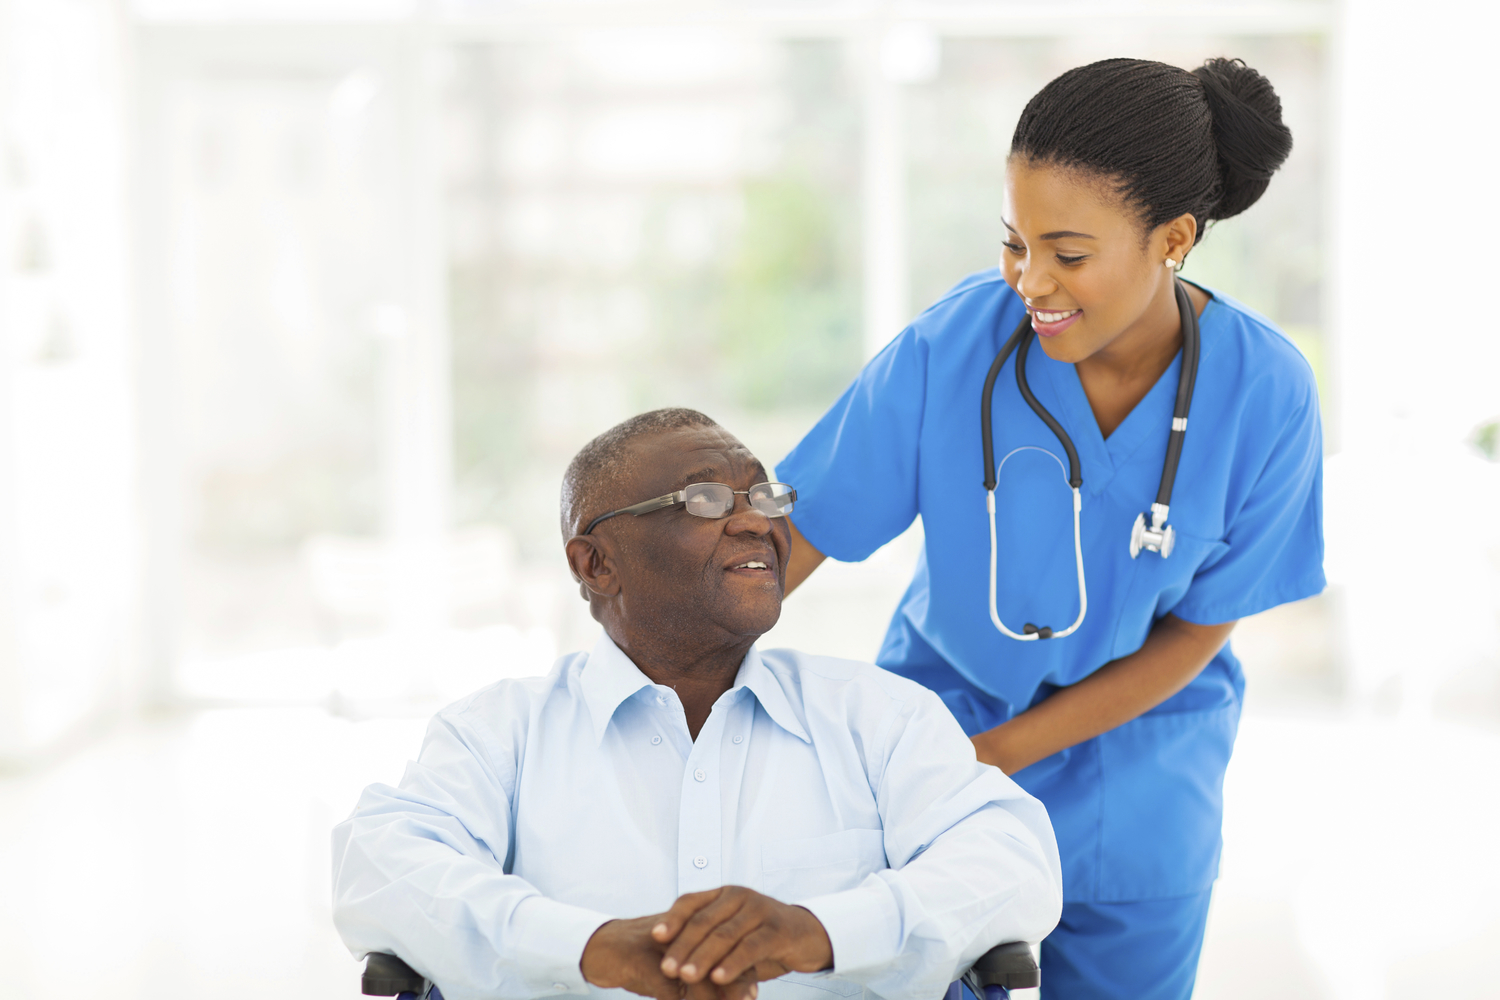 Home Healthcare Solutions Growth Driven by Digitization and Smartphone Penetration